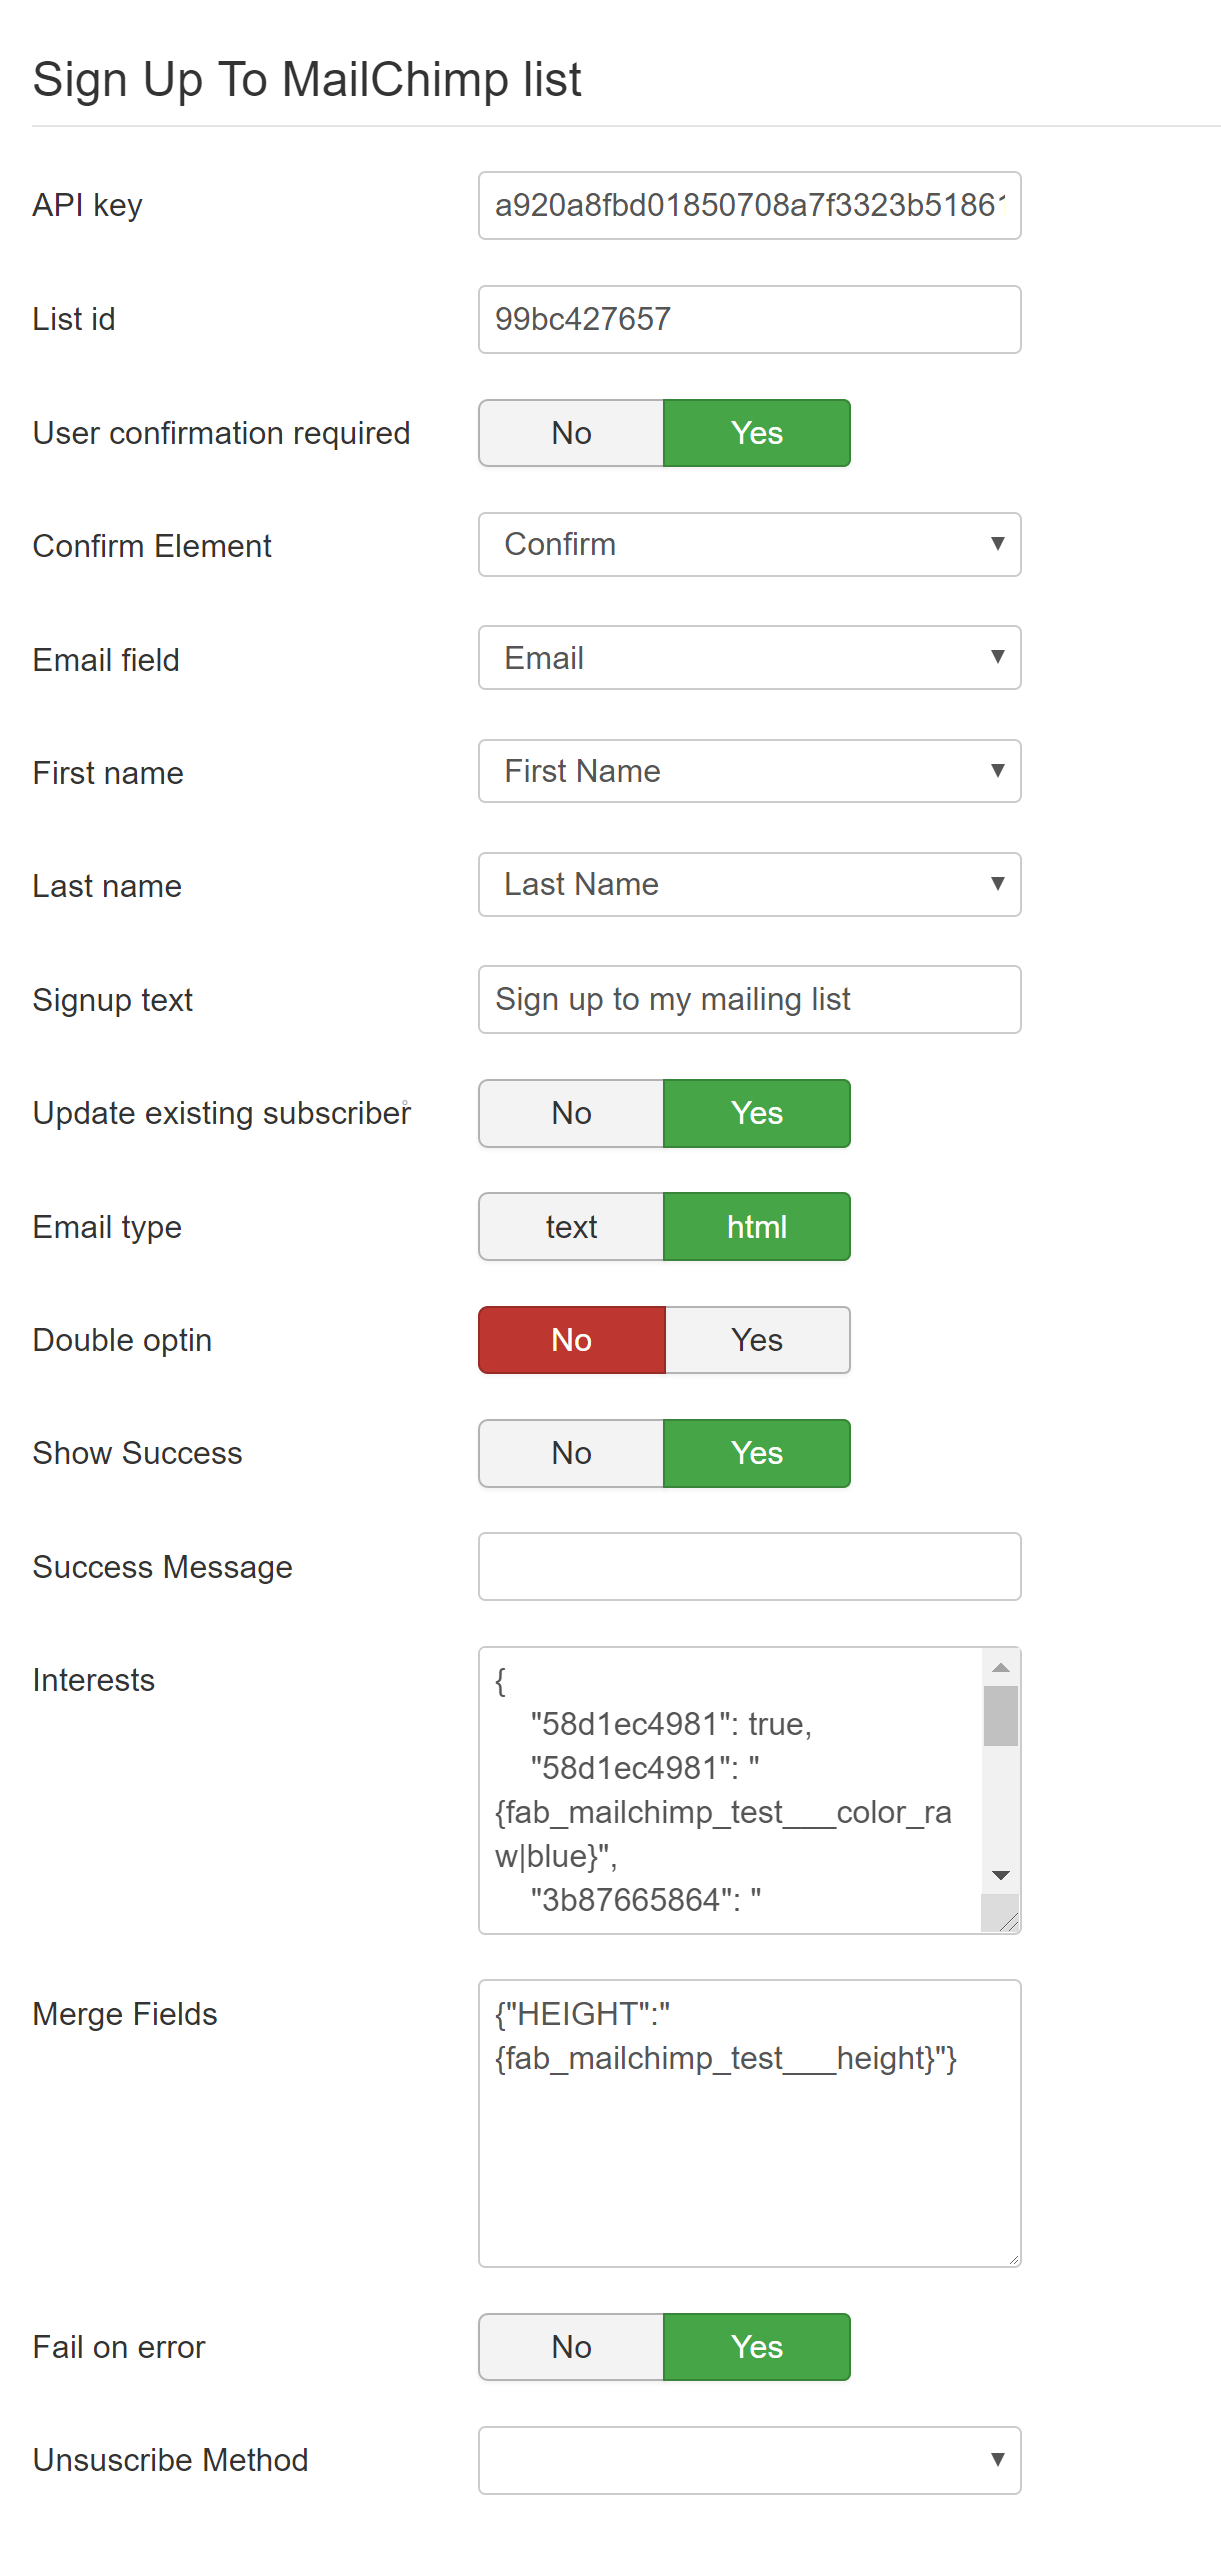 mailchimp_settings2.png